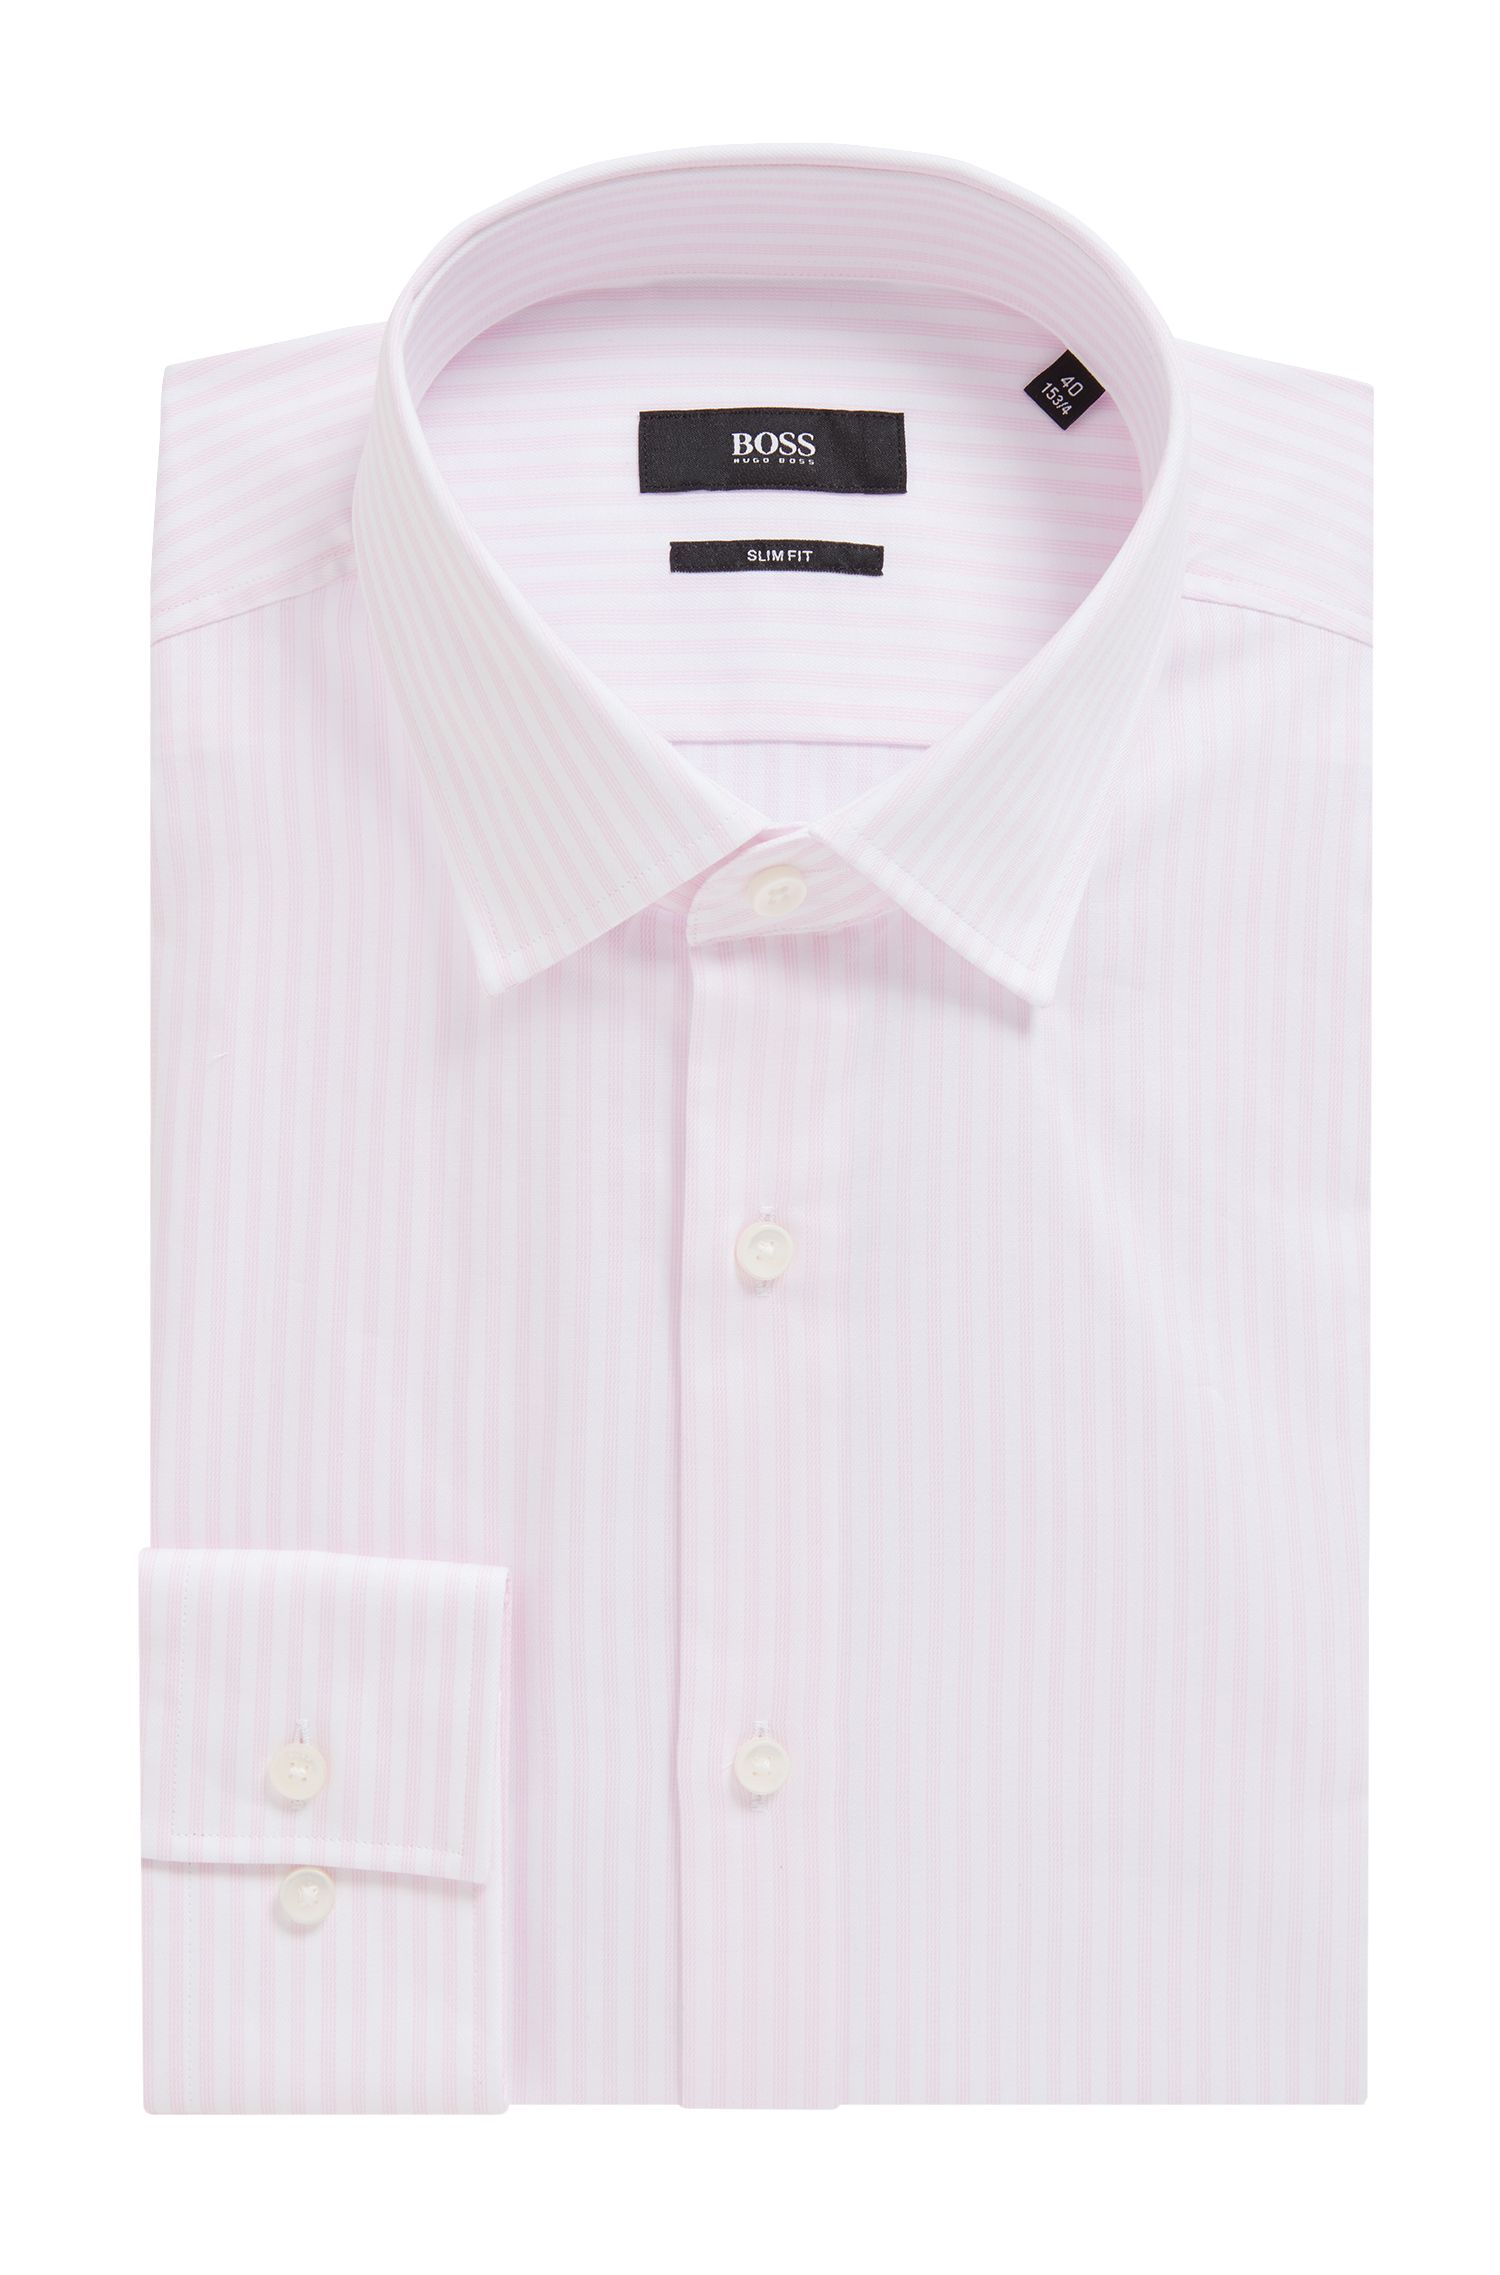 Slim-fit shirt with vertical stripes on cotton twill, light pink